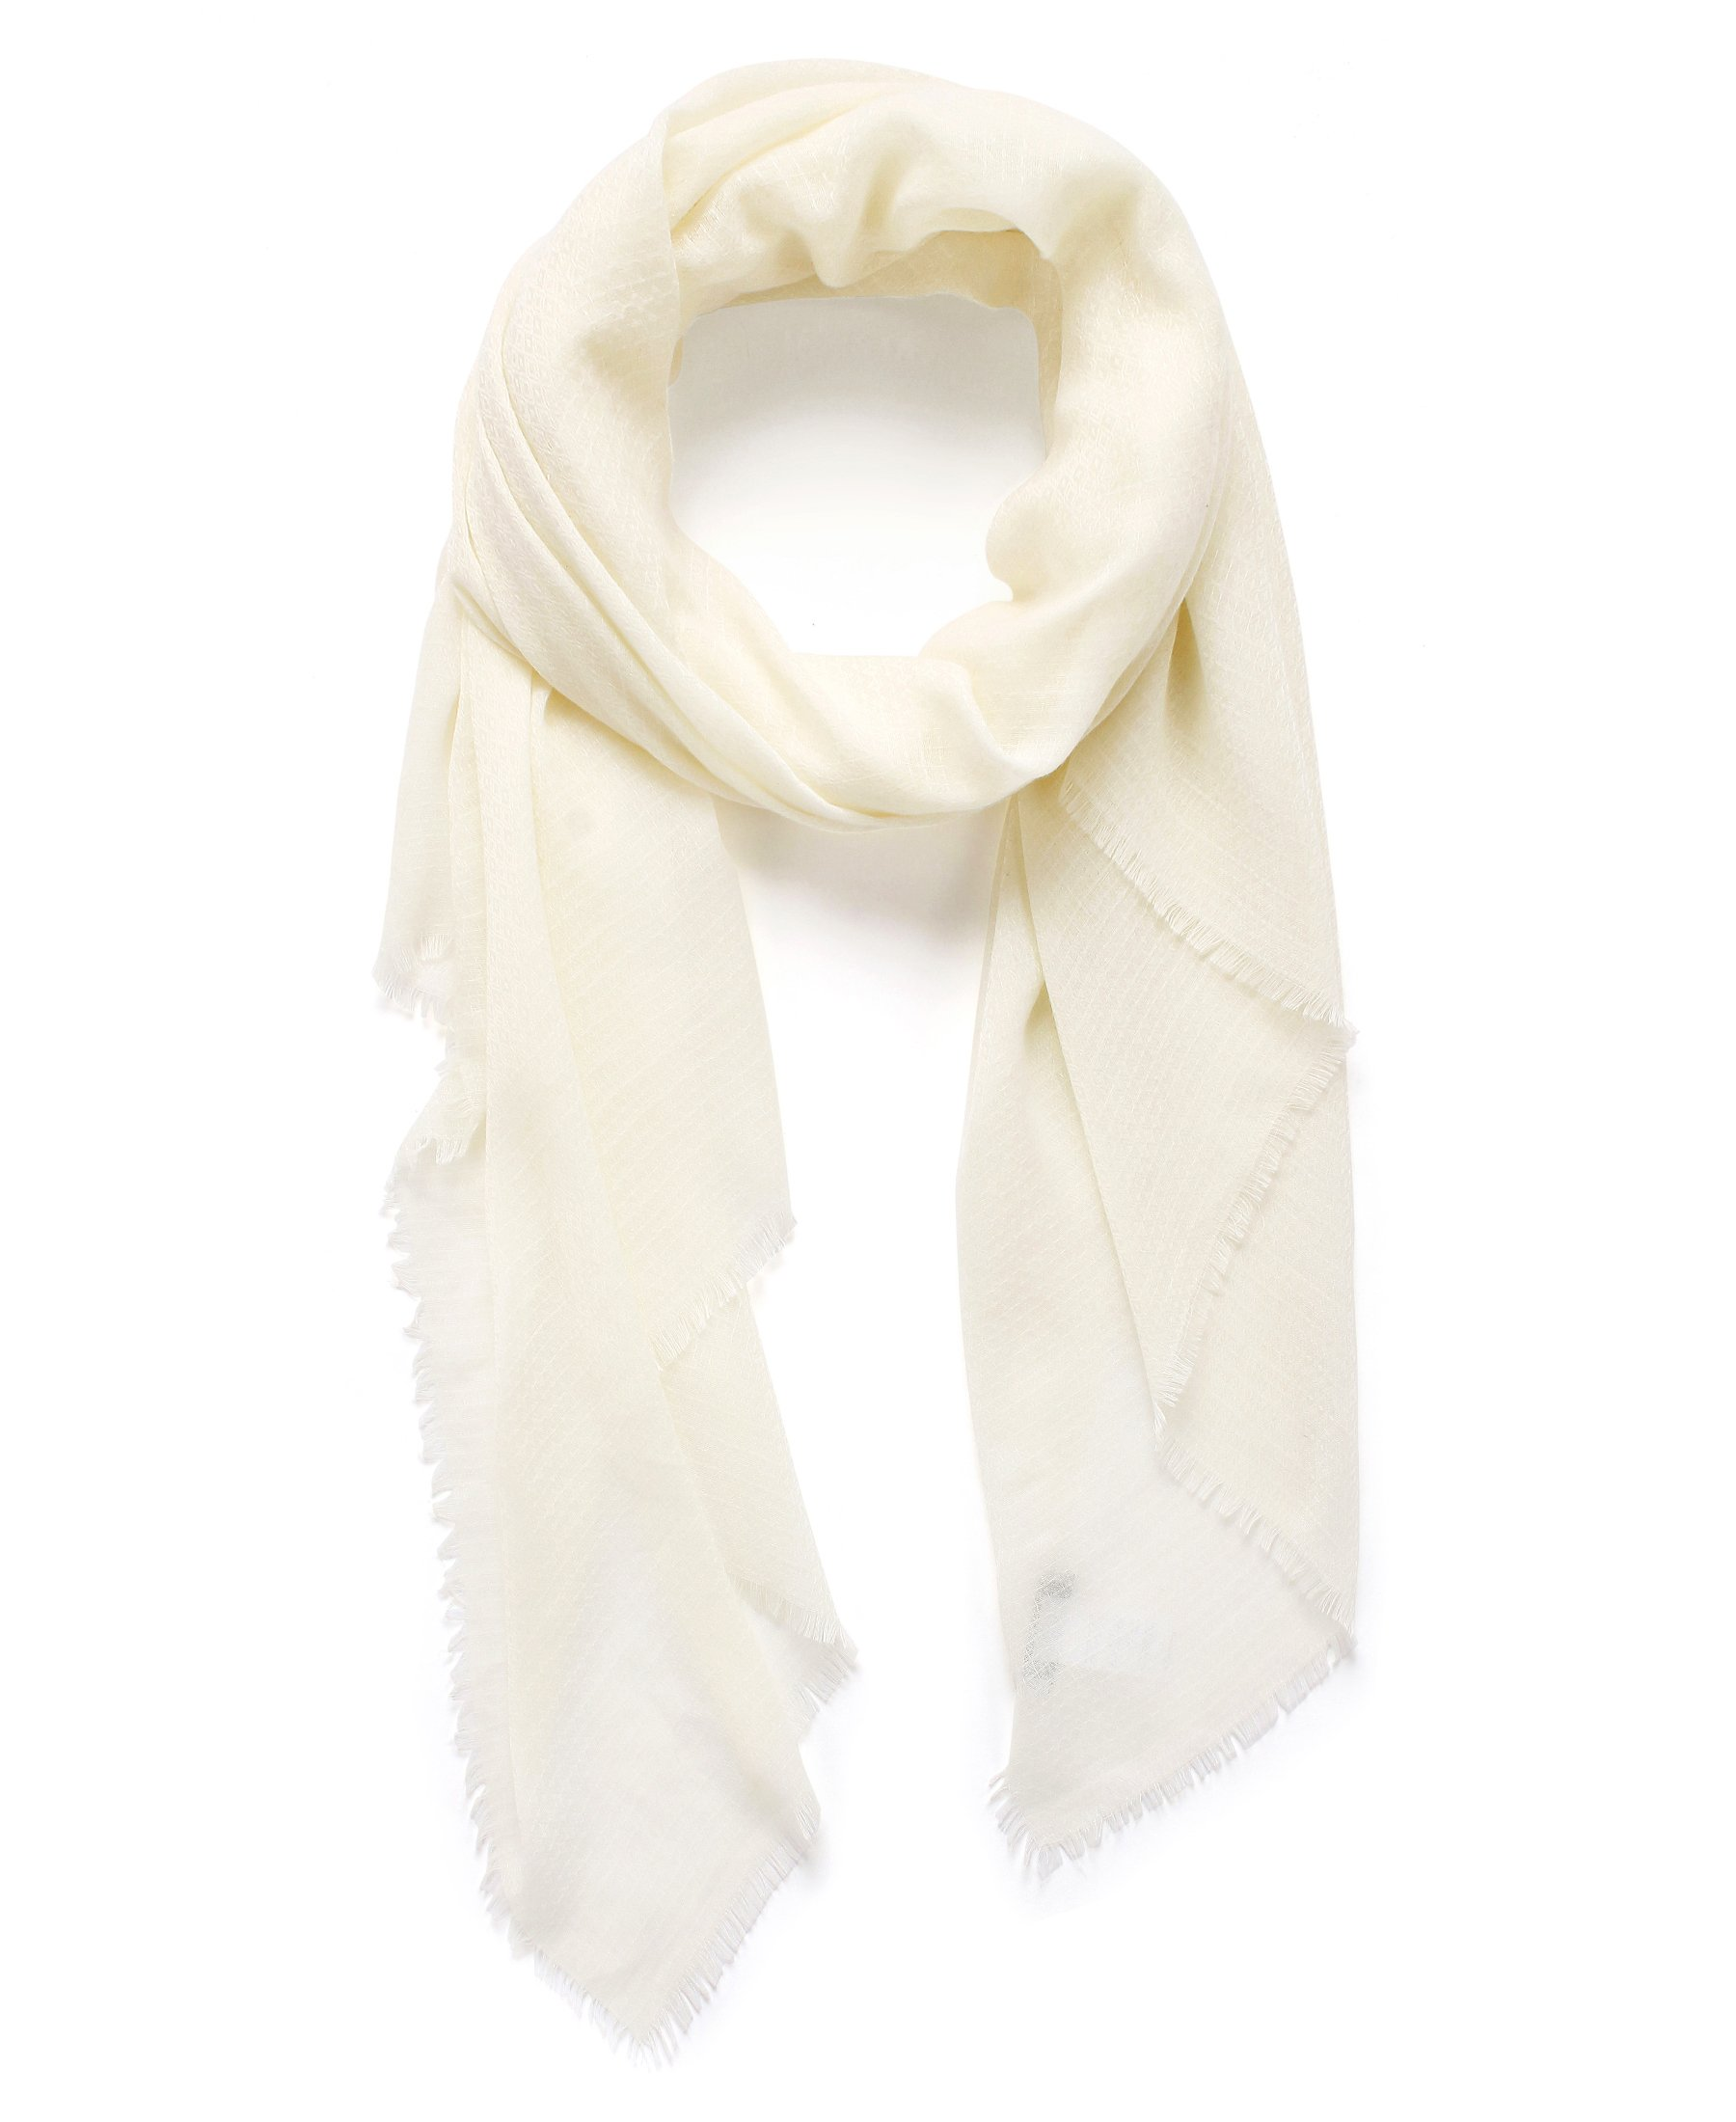 EUPHIE YING Rich Solid Color Lightweight Scarves High Fashion Sparkle Shawl Wrap For Women